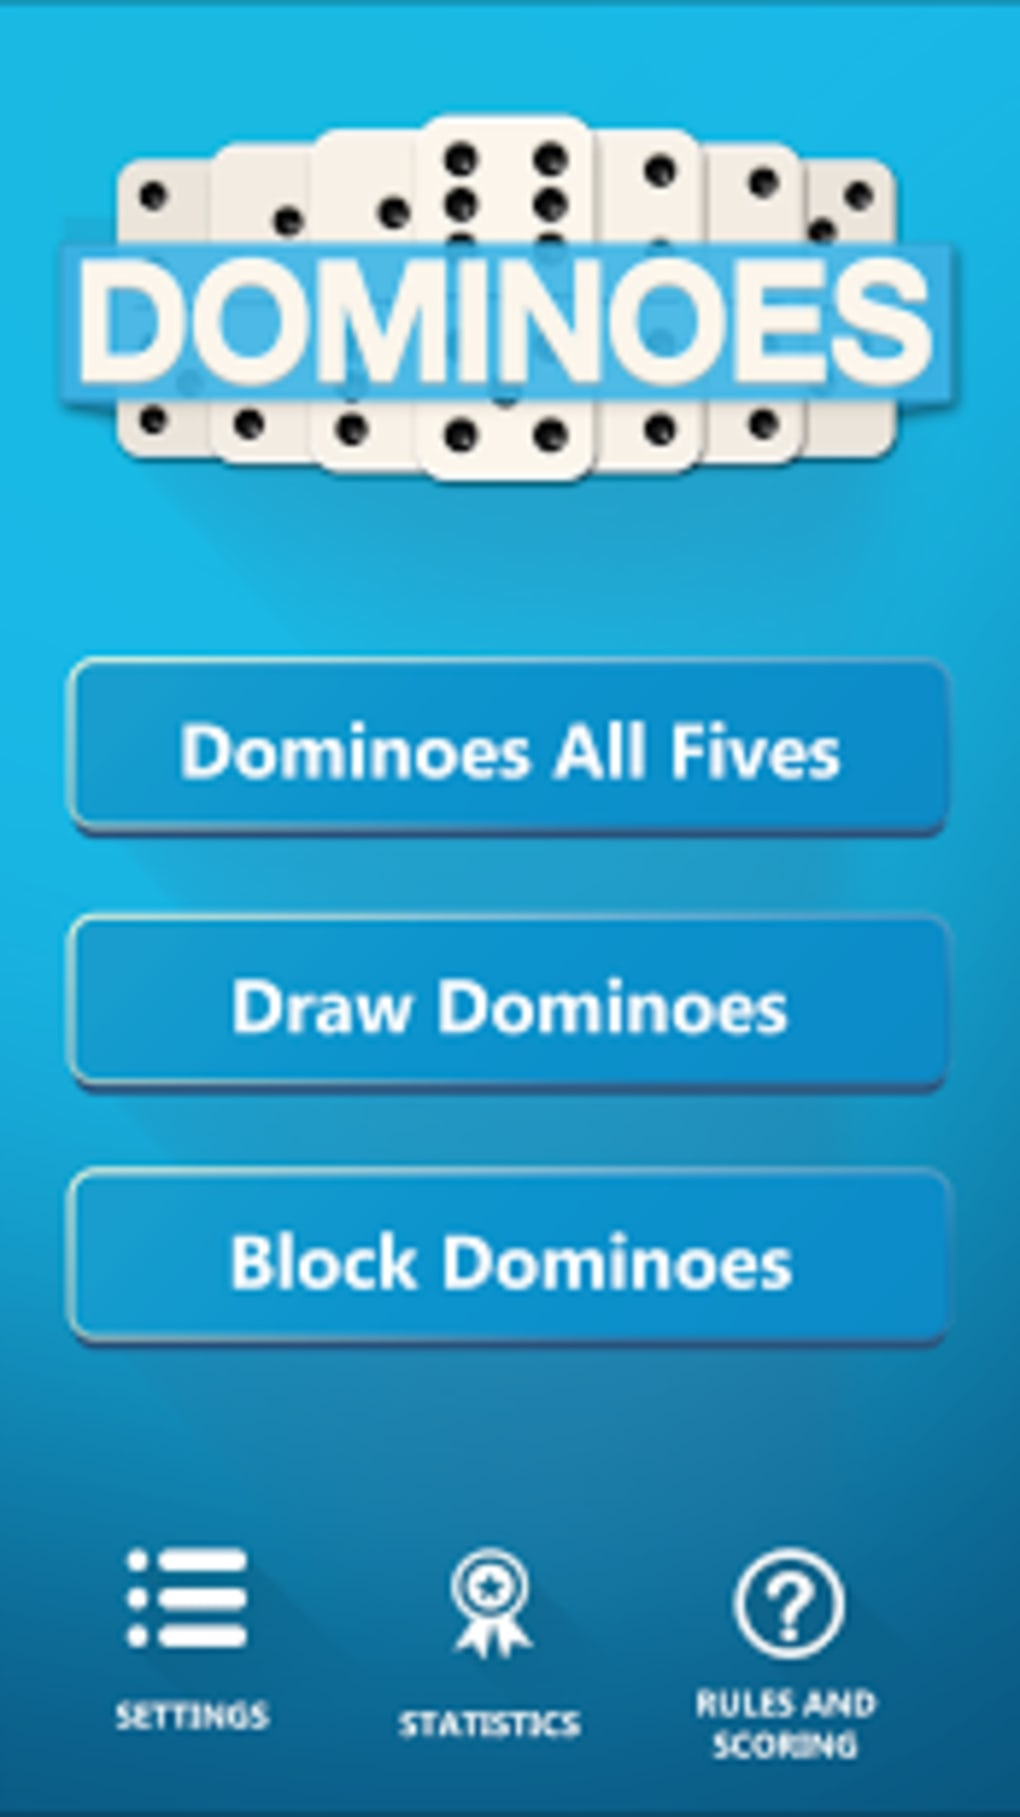 Dominoes the best domino game APK for Android - Download